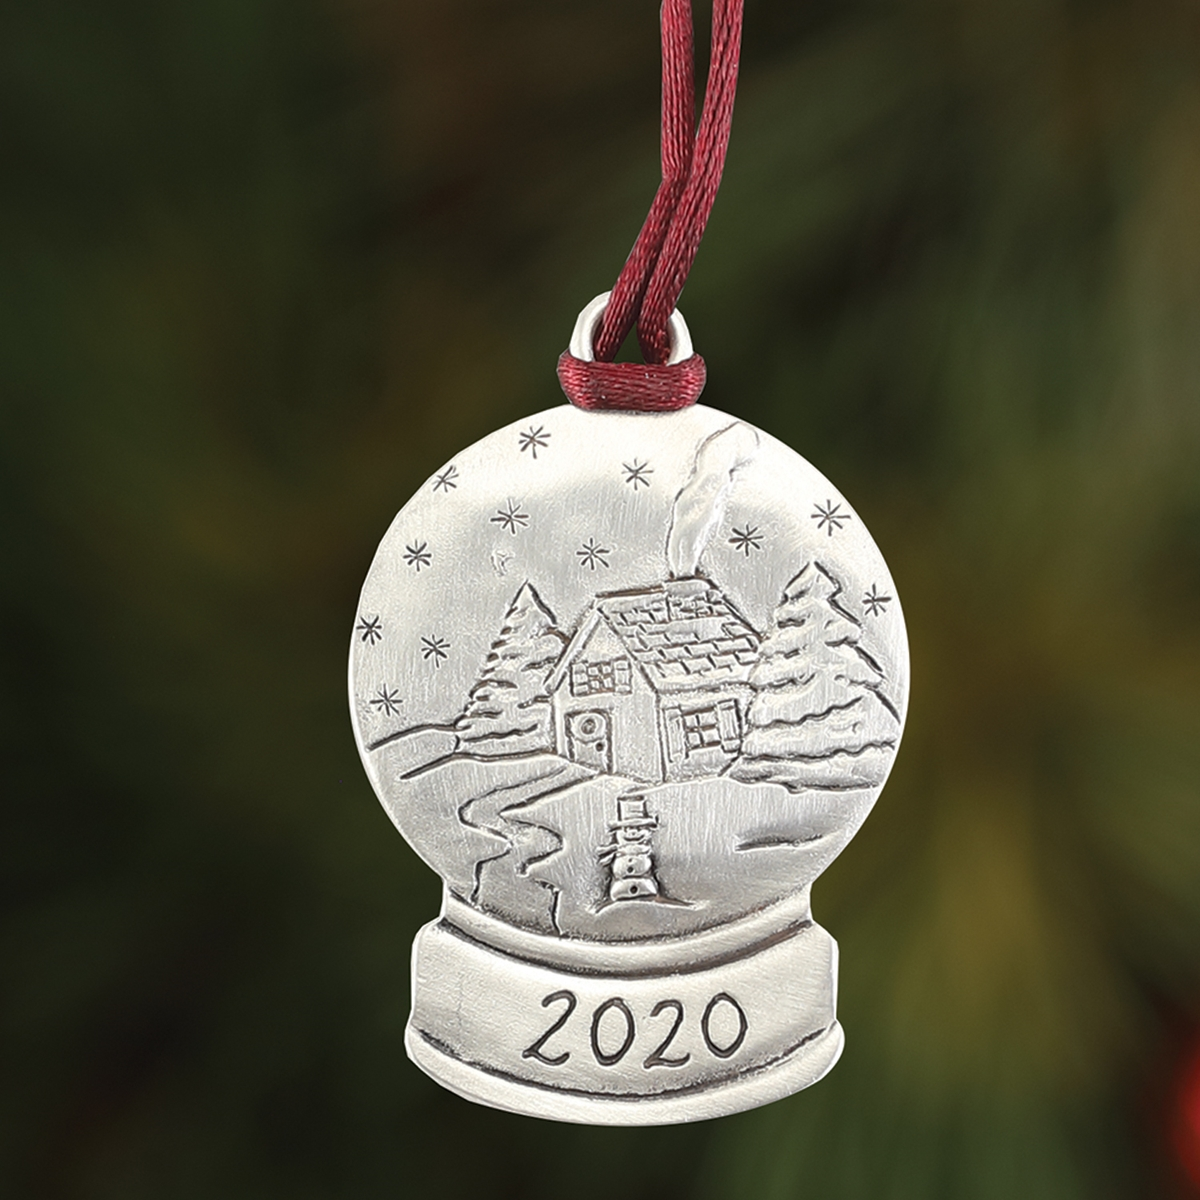 2020 Winter Globe Plant a Tree Ornament